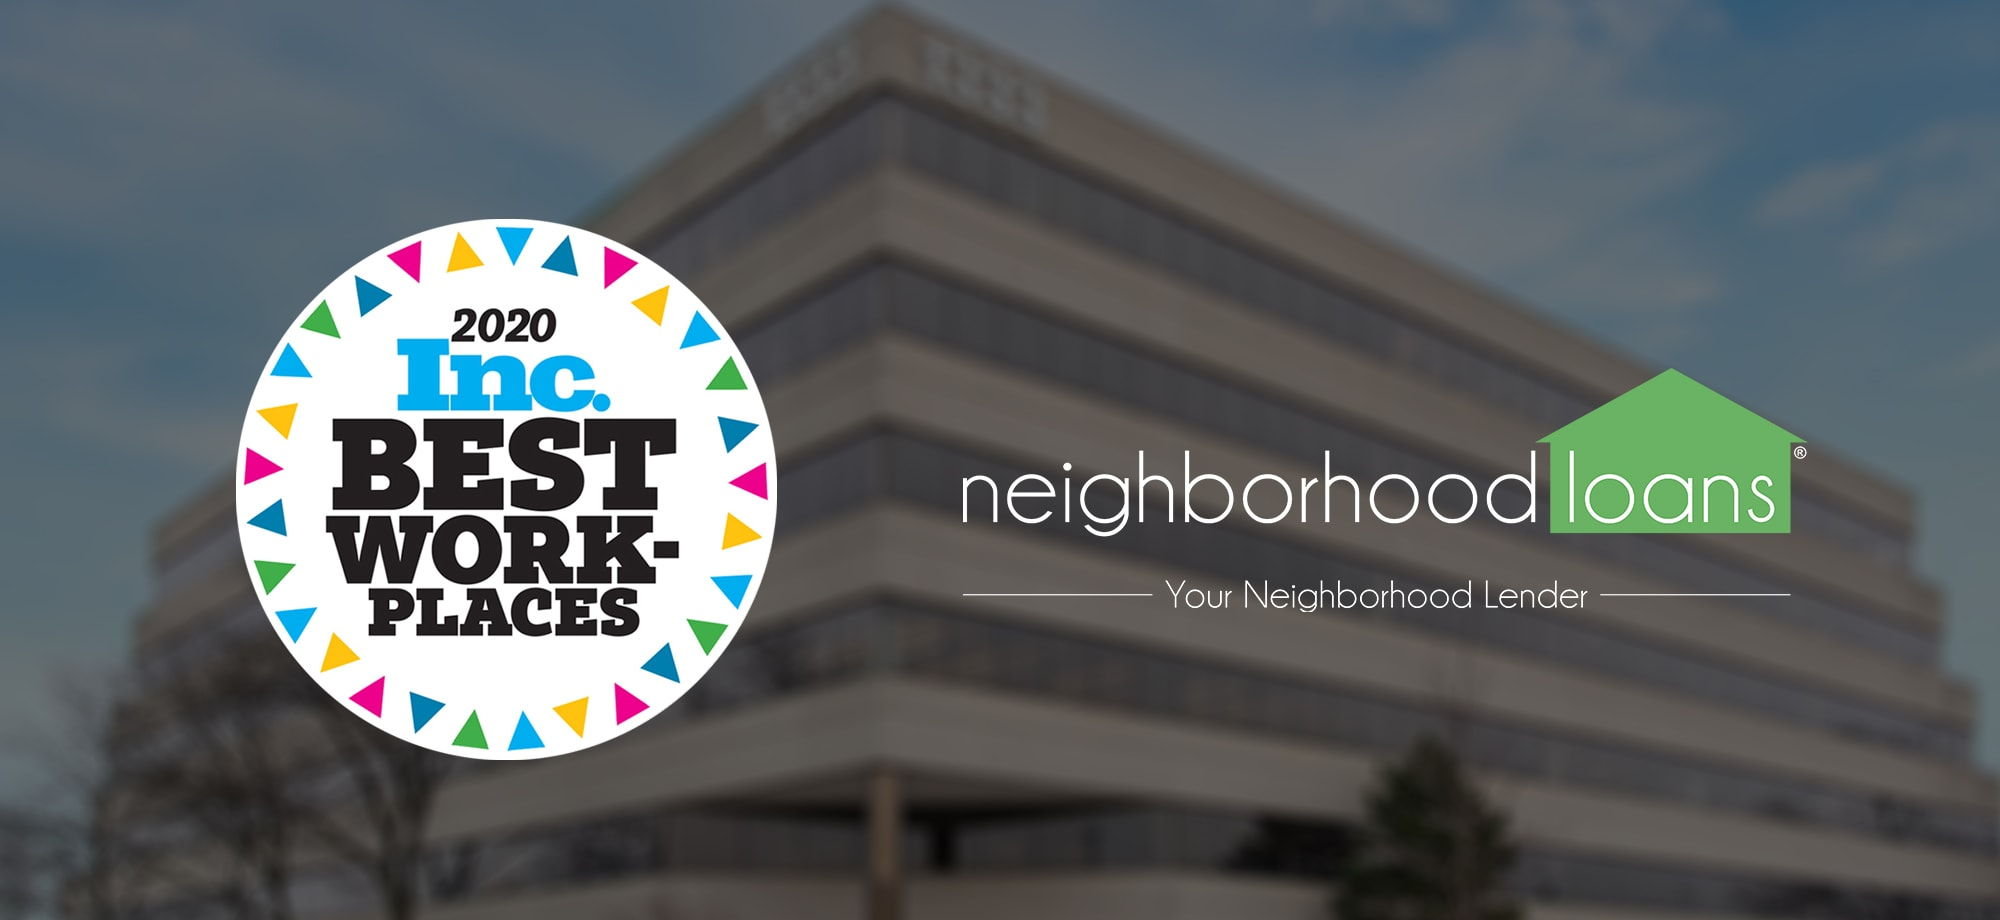 best place to work 2020 neighborhood loans